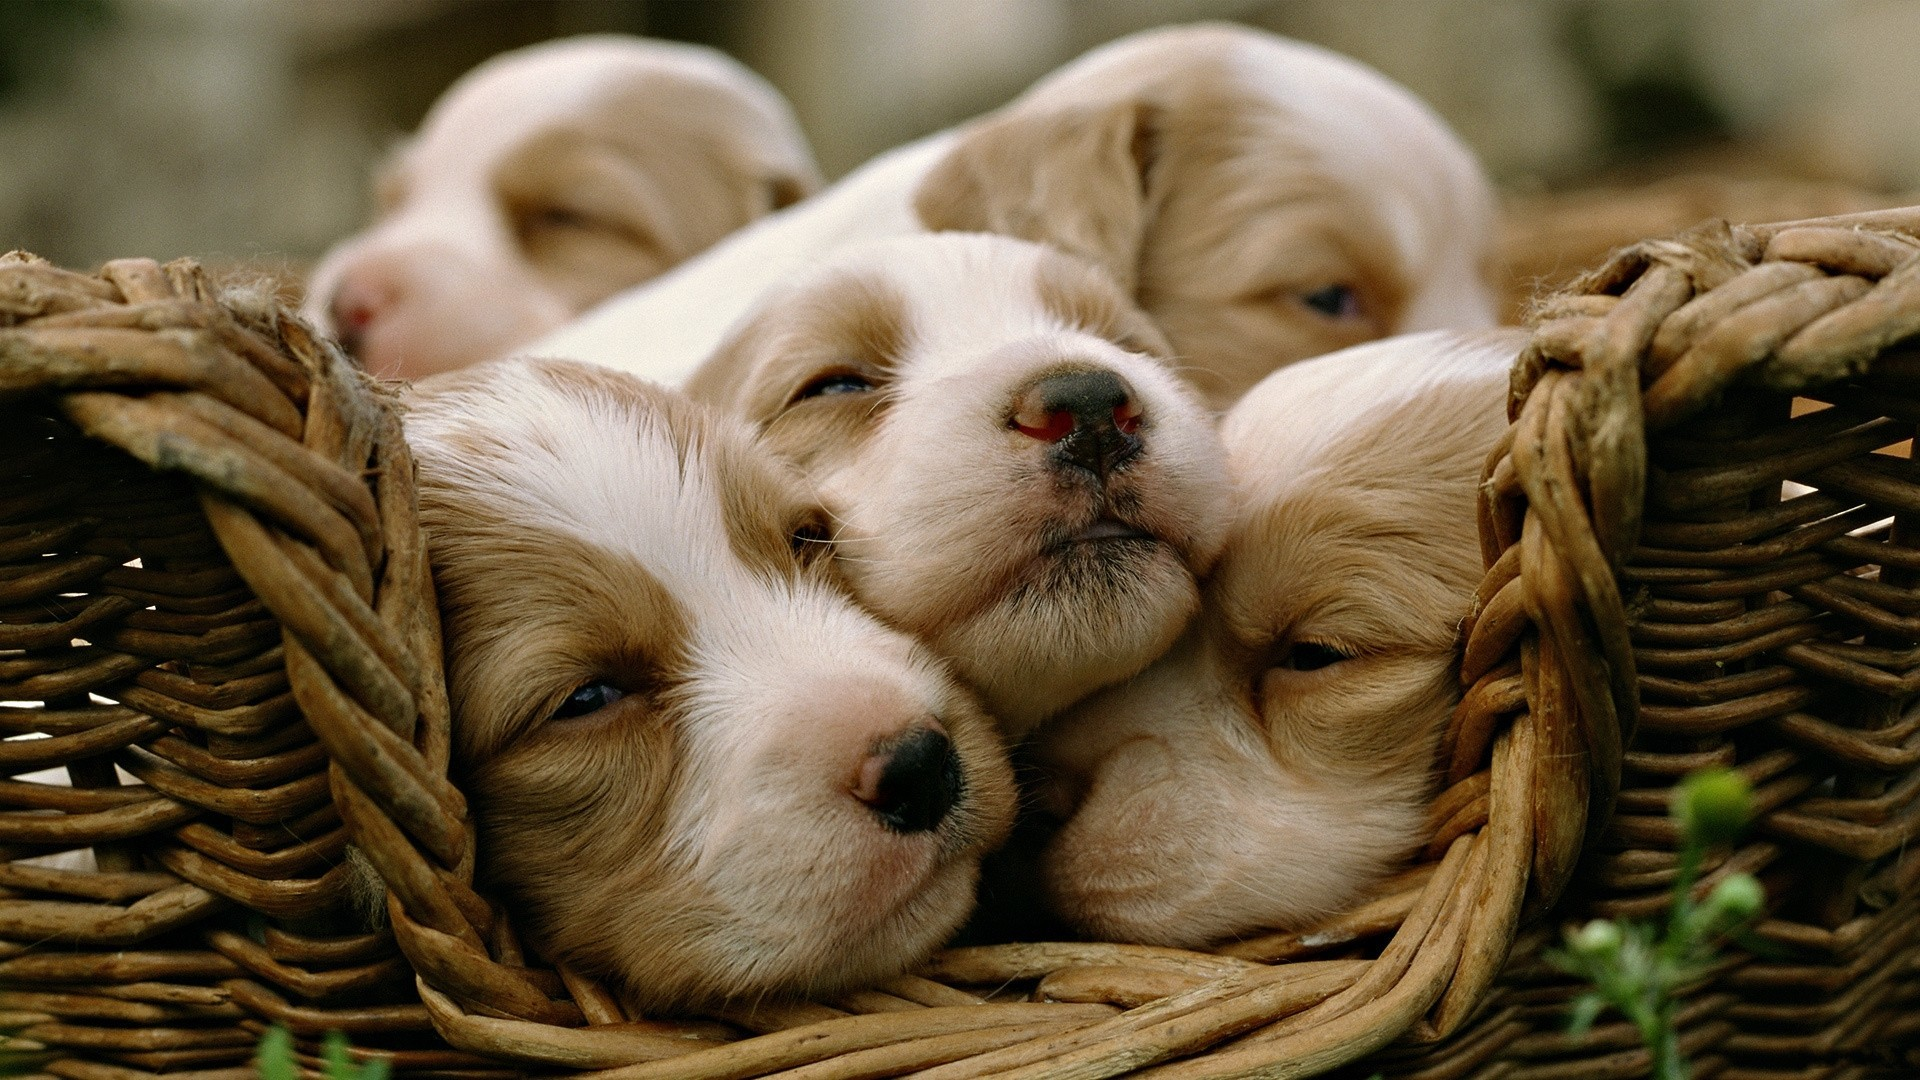 Animals Dogs Puppies sleeping HD Wallpaper